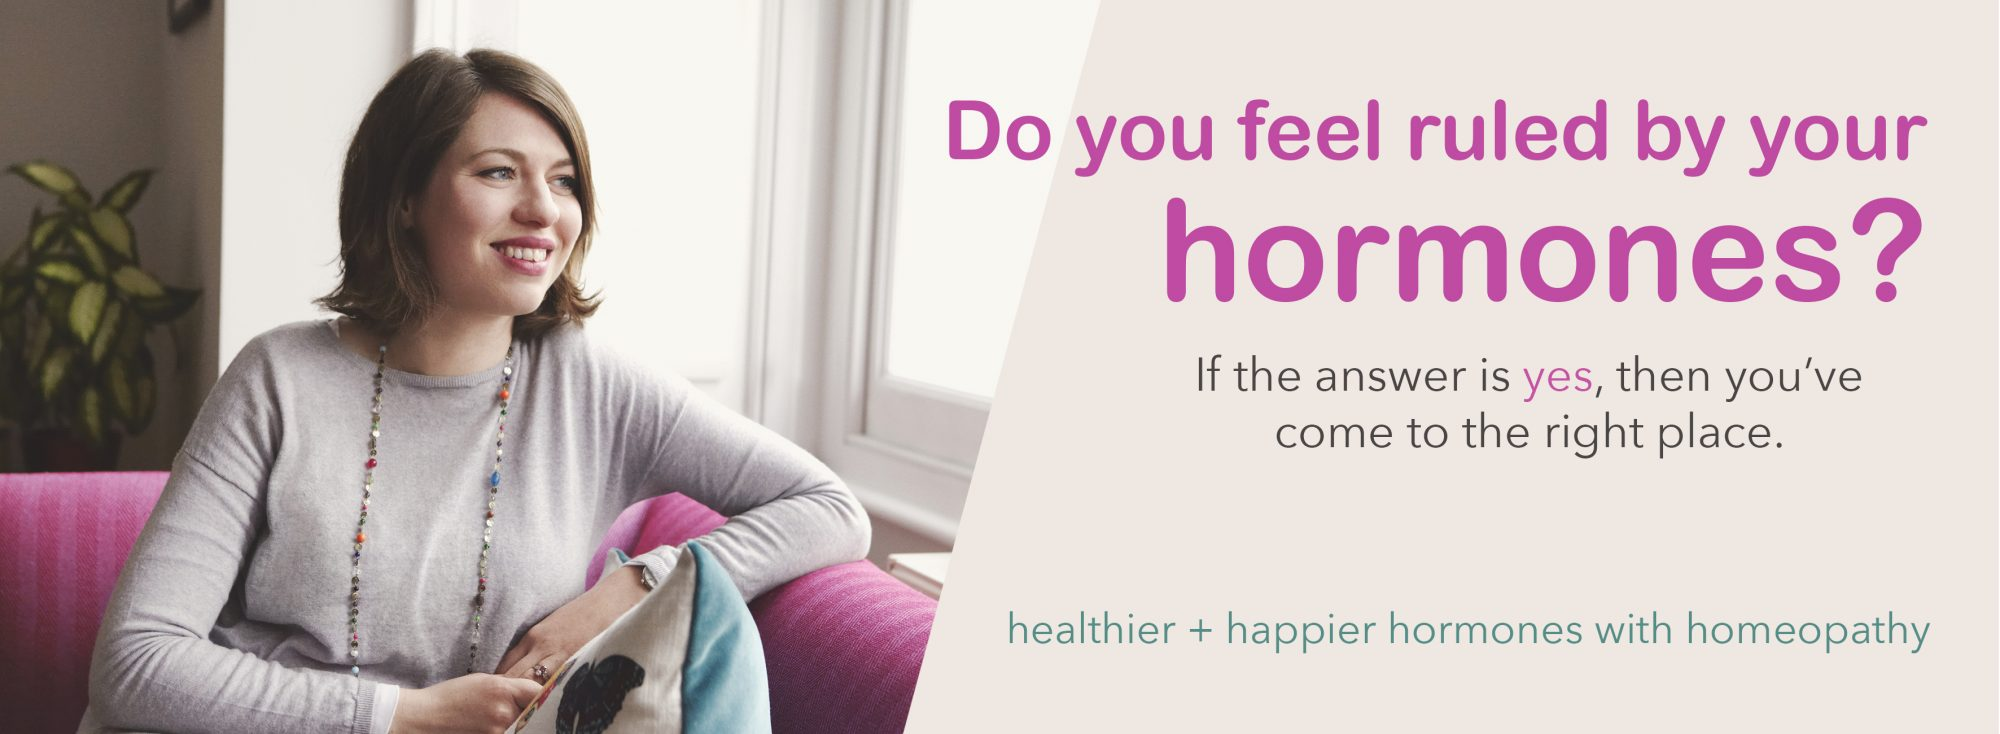 Hormones - happier & healthier with homeopathy | London | Skype